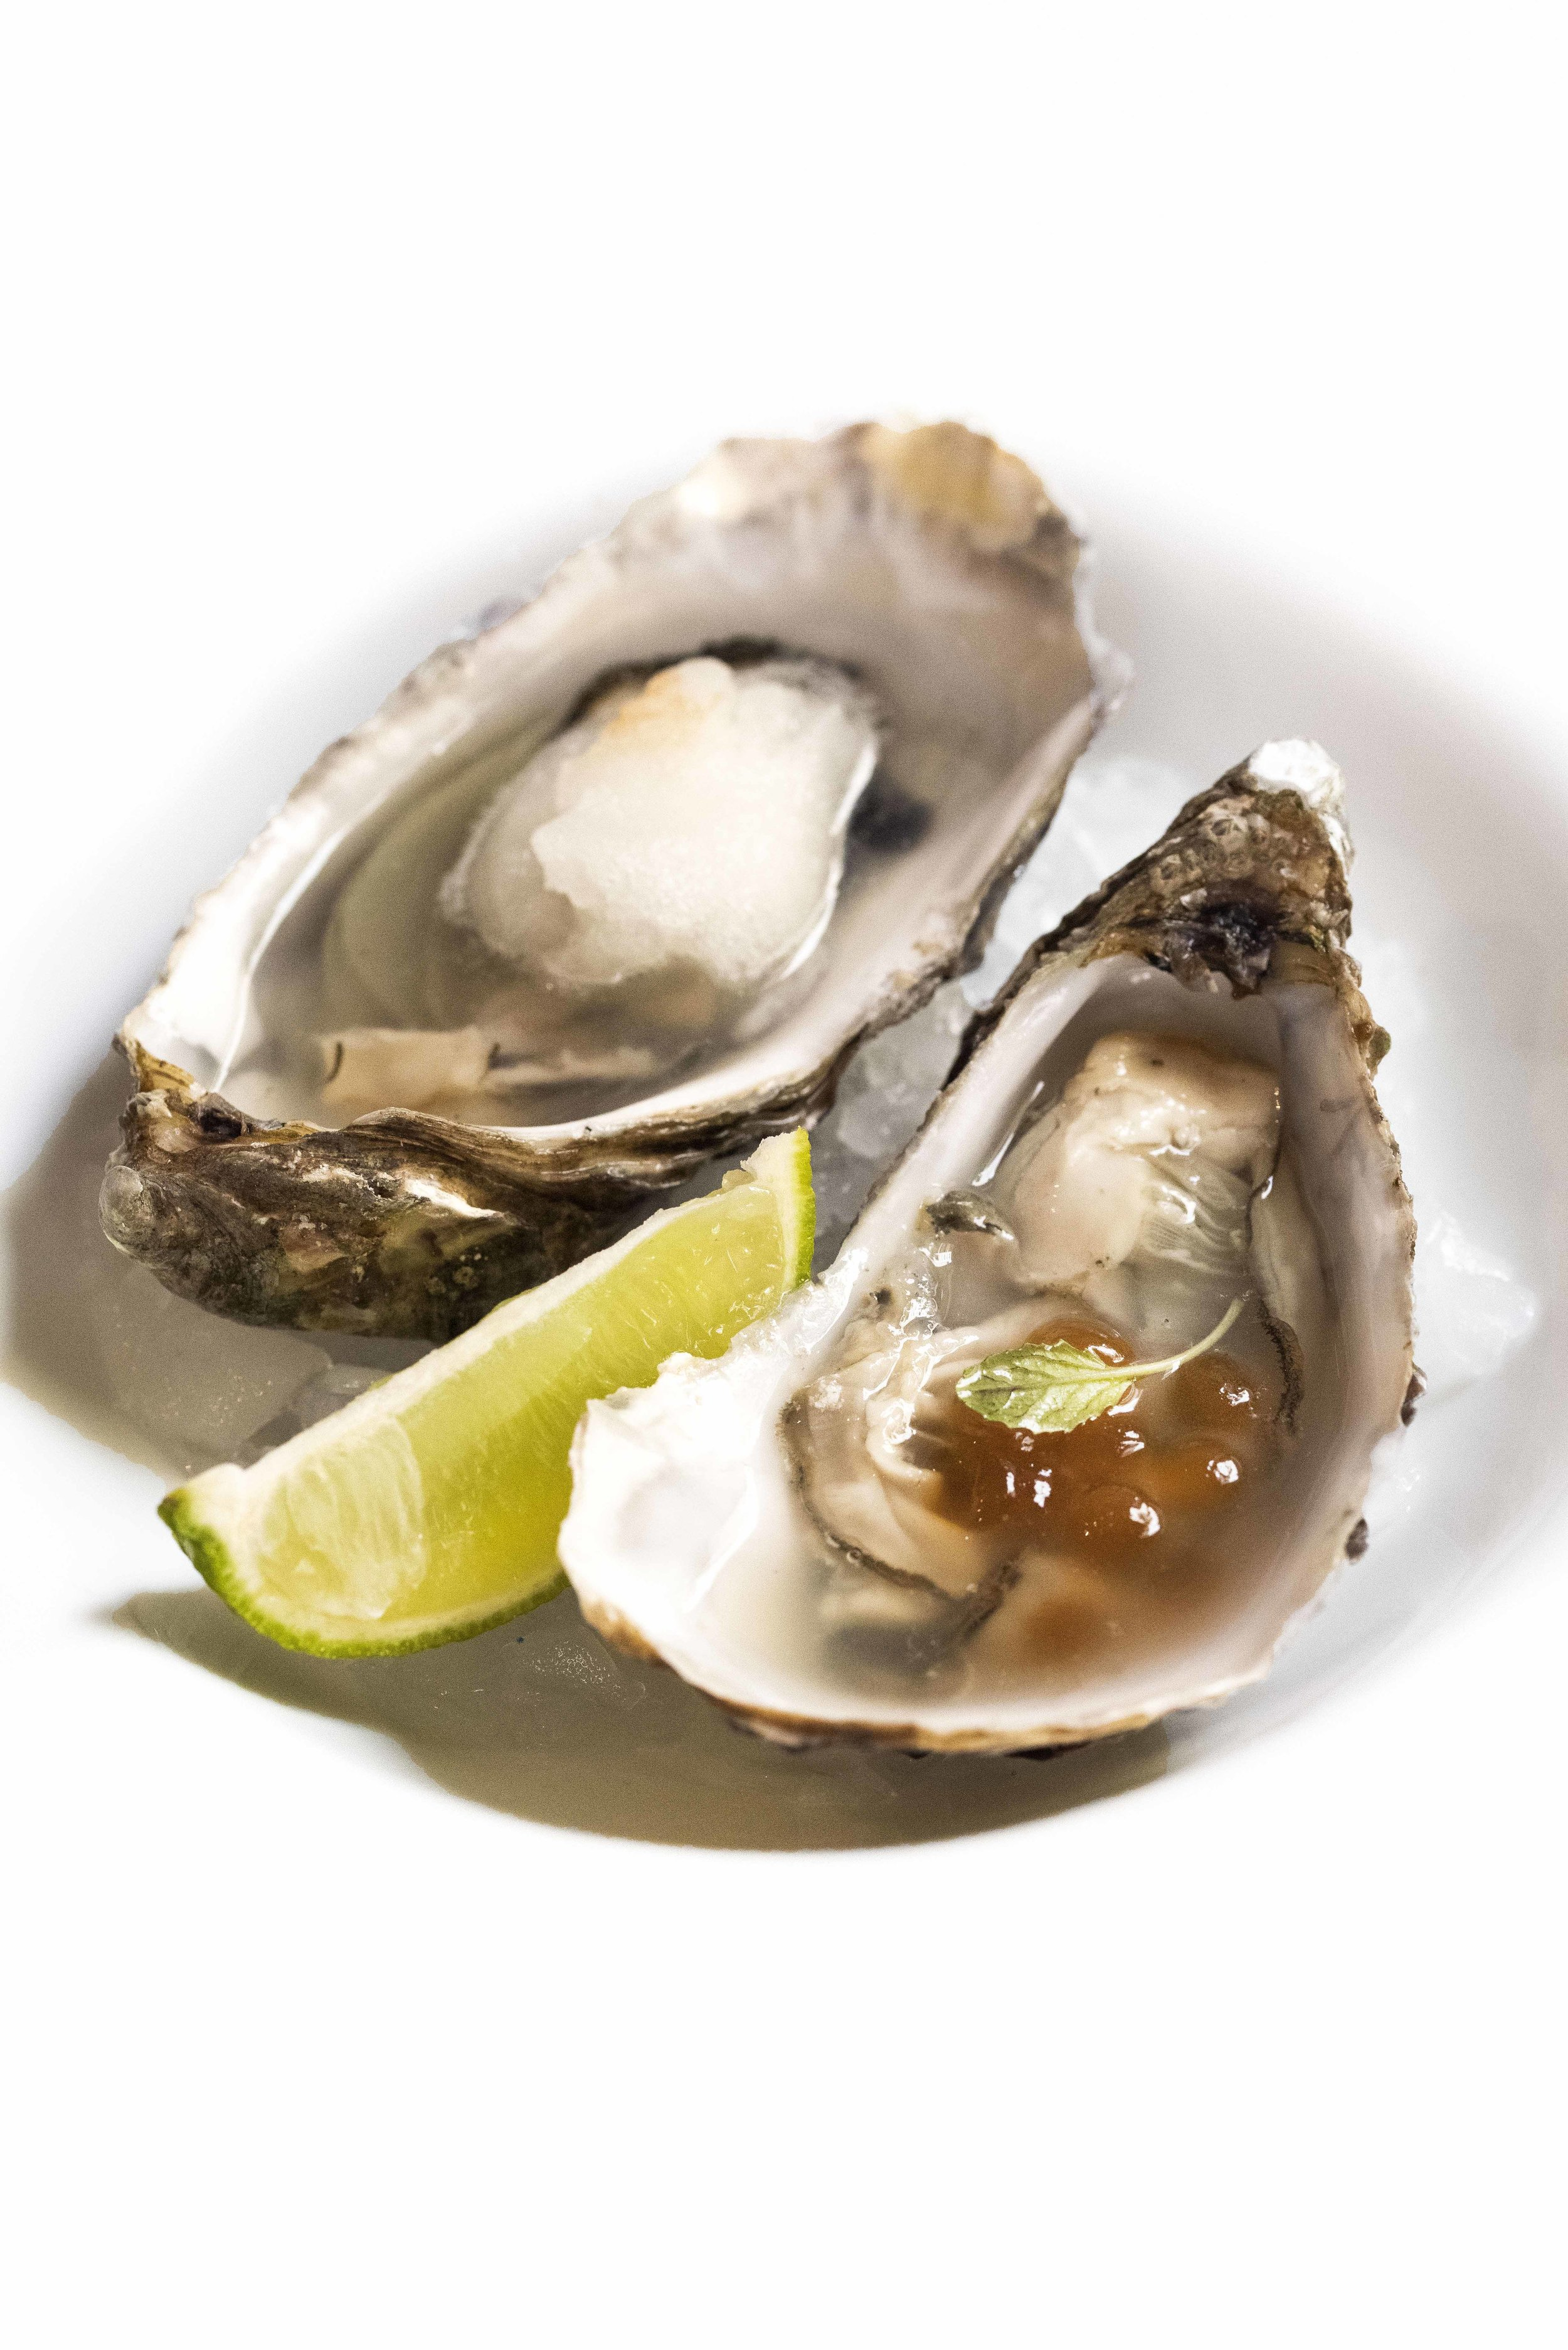 Oysters at Fastuc Restaurant, Barcelona. Photo © Barcelona Food Experience.